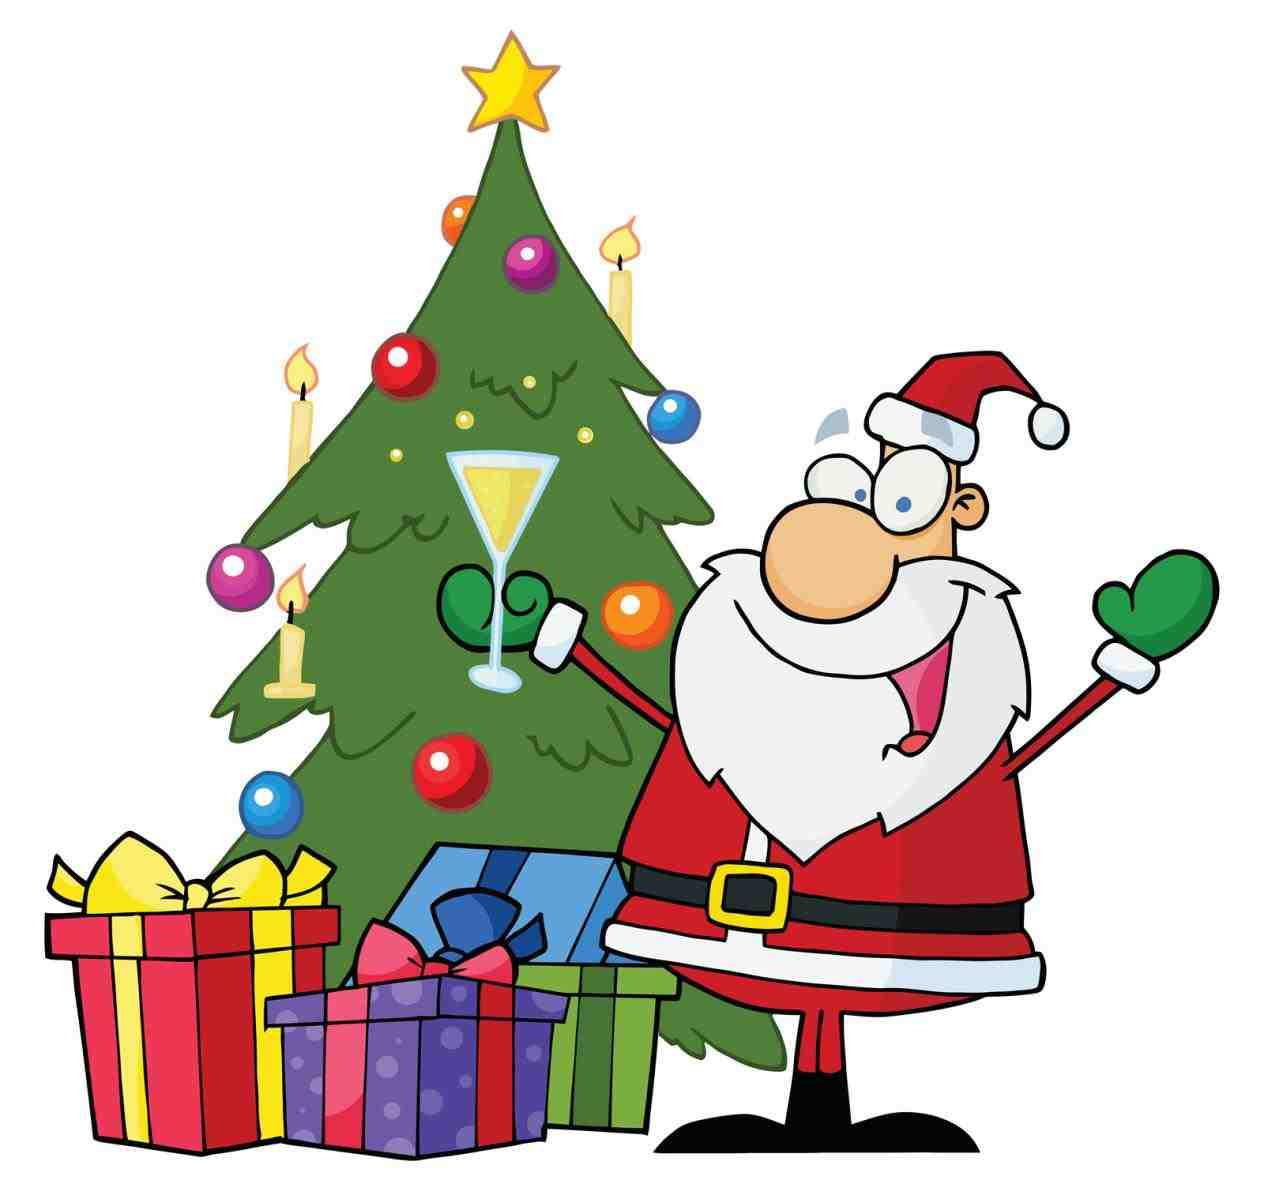 1264x1195 Animated Christmas Decorations Clipart Cheminee.website